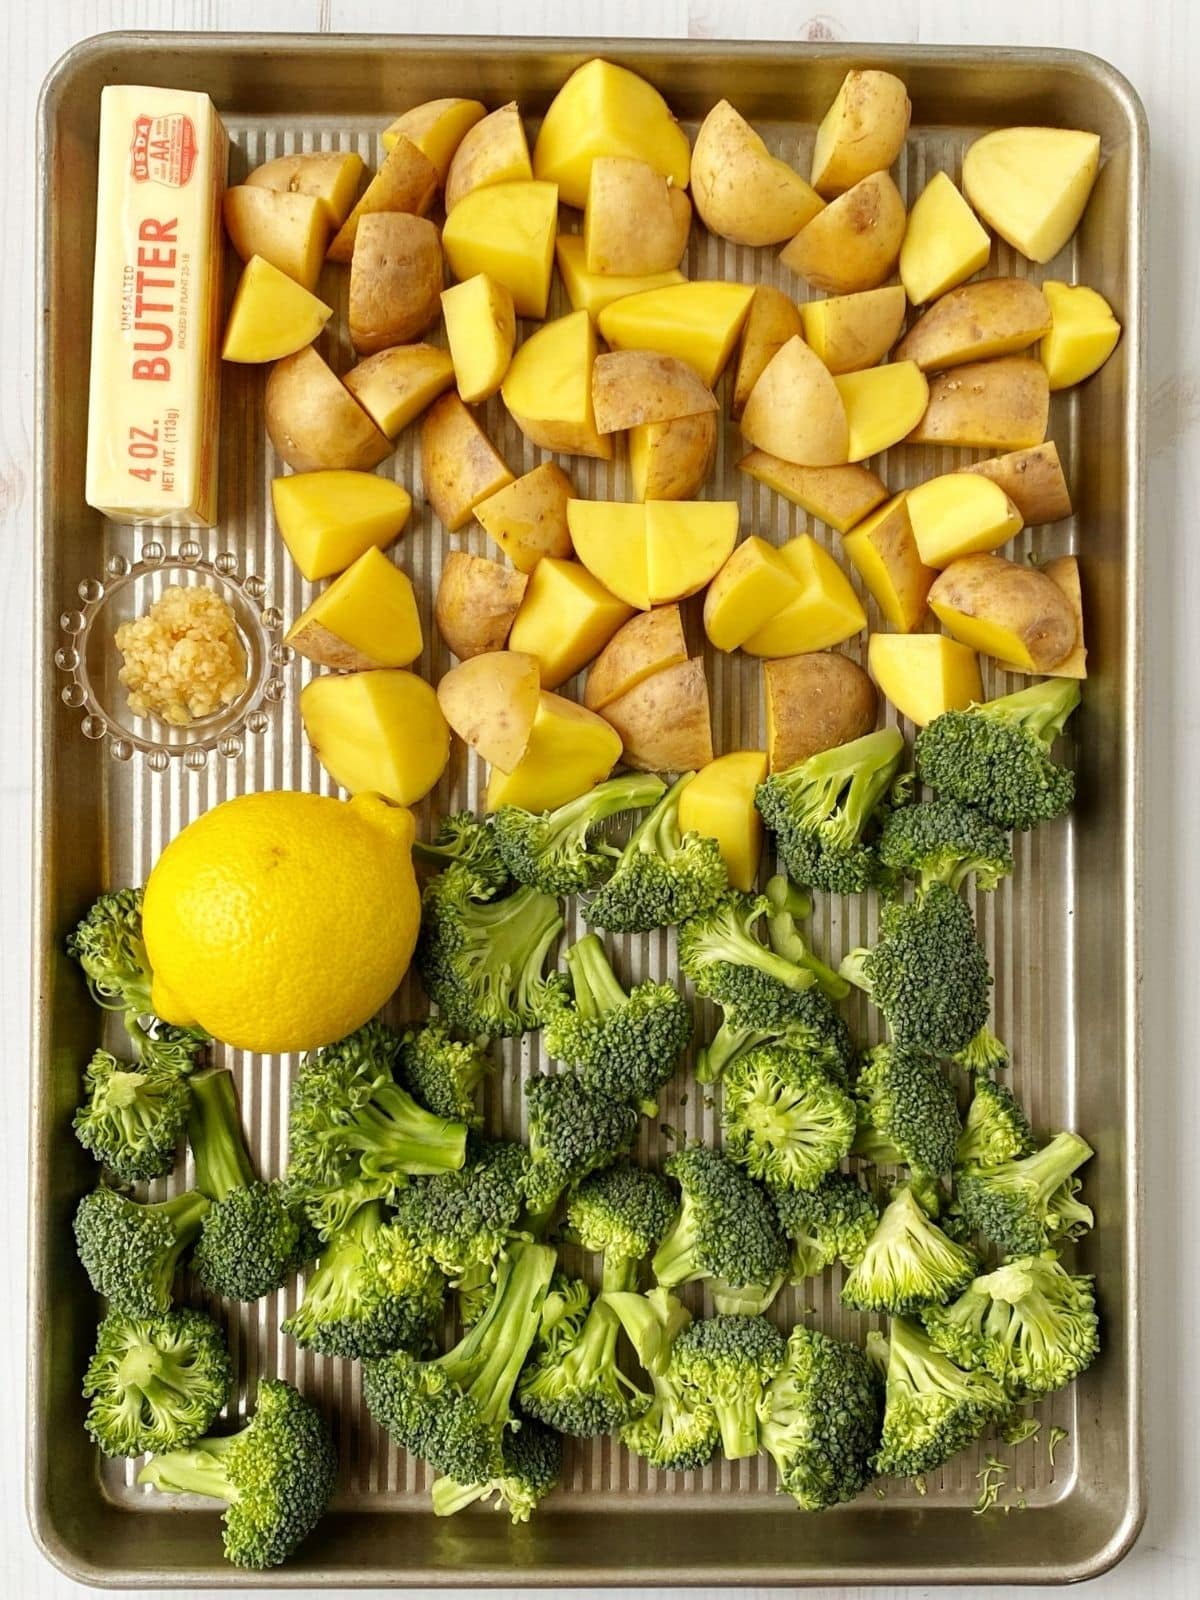 sheet pan with ingredients for roasted veggies including butter, garlic, and lemon